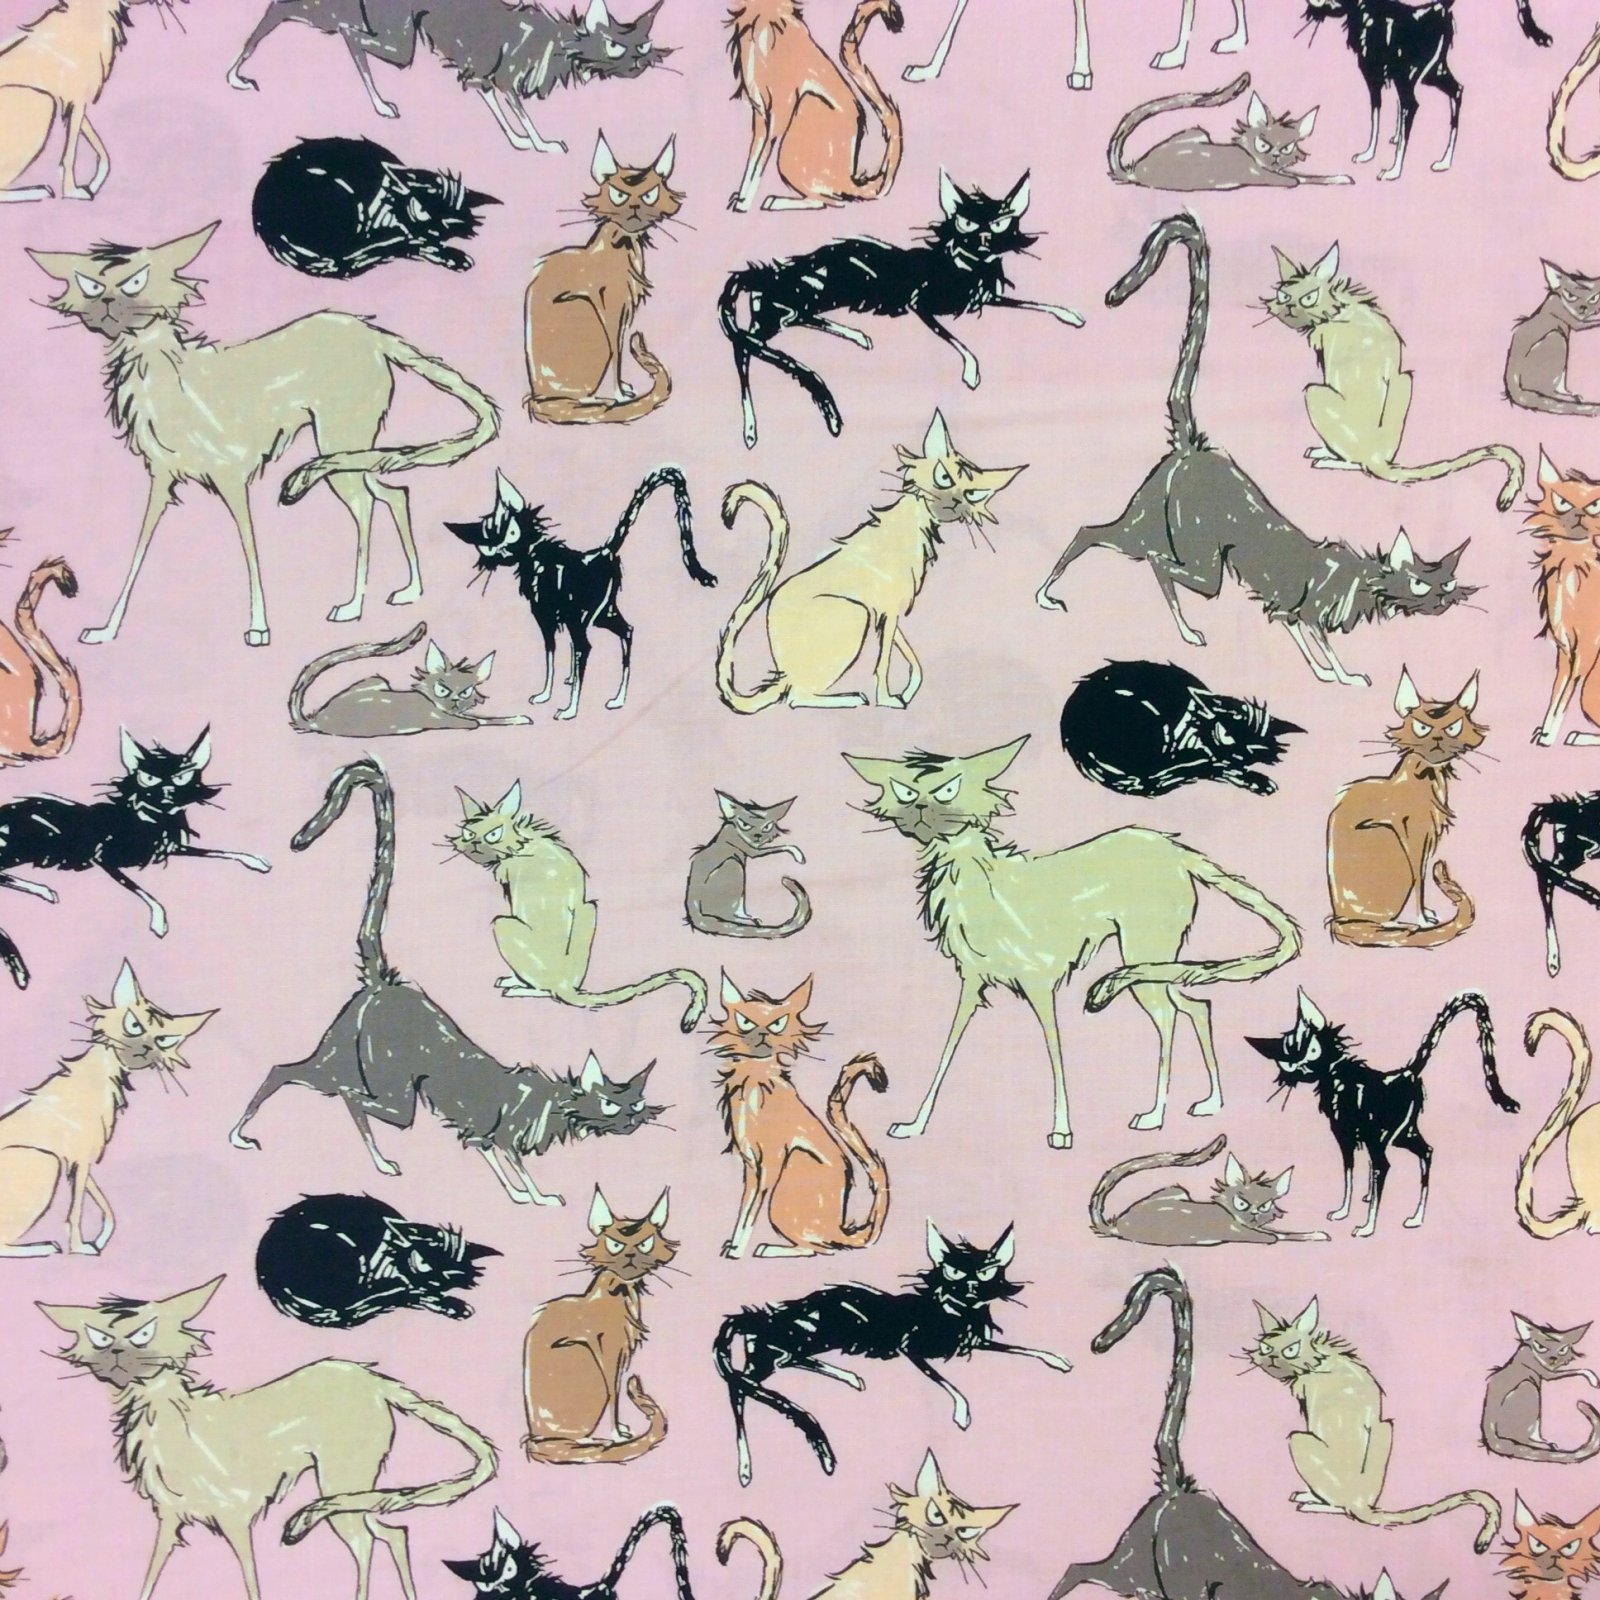 Ghastly Black Cats Superstitious Haunted 9 Lives Scary Cotton Quilt Fabric AH201